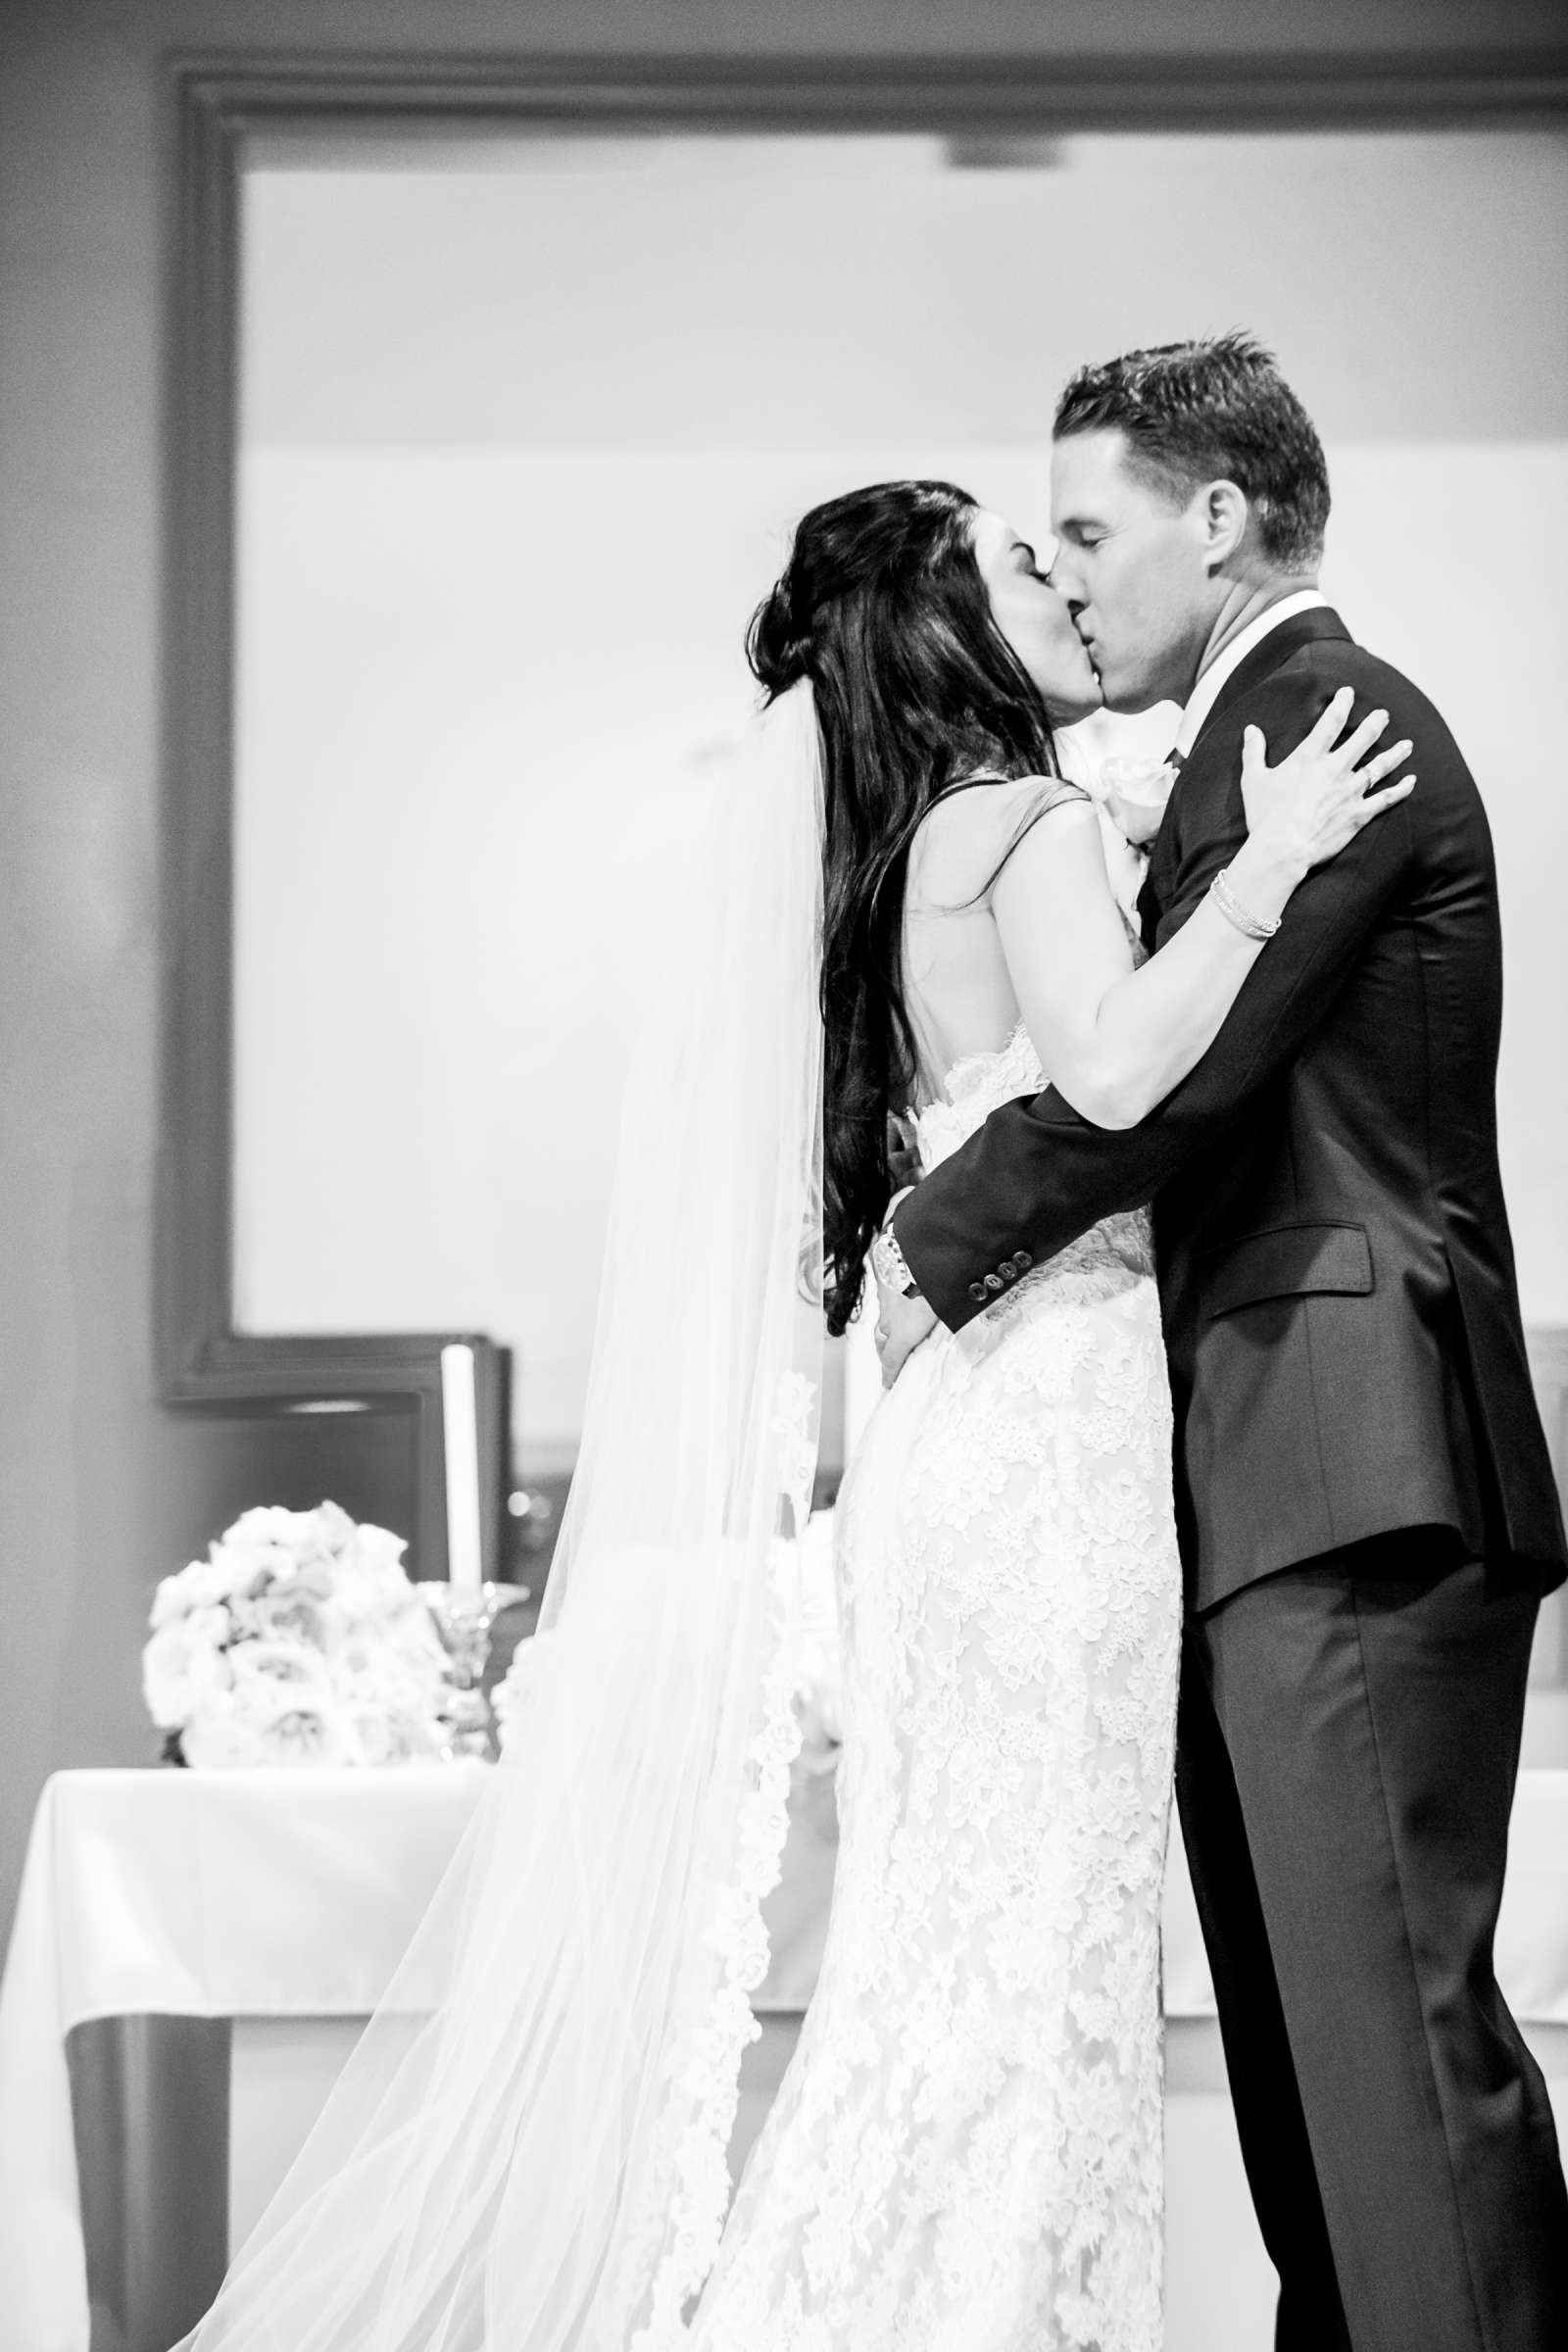 La Valencia Wedding coordinated by First Comes Love Weddings & Events, Lea and Nick Wedding Photo #24 by True Photography